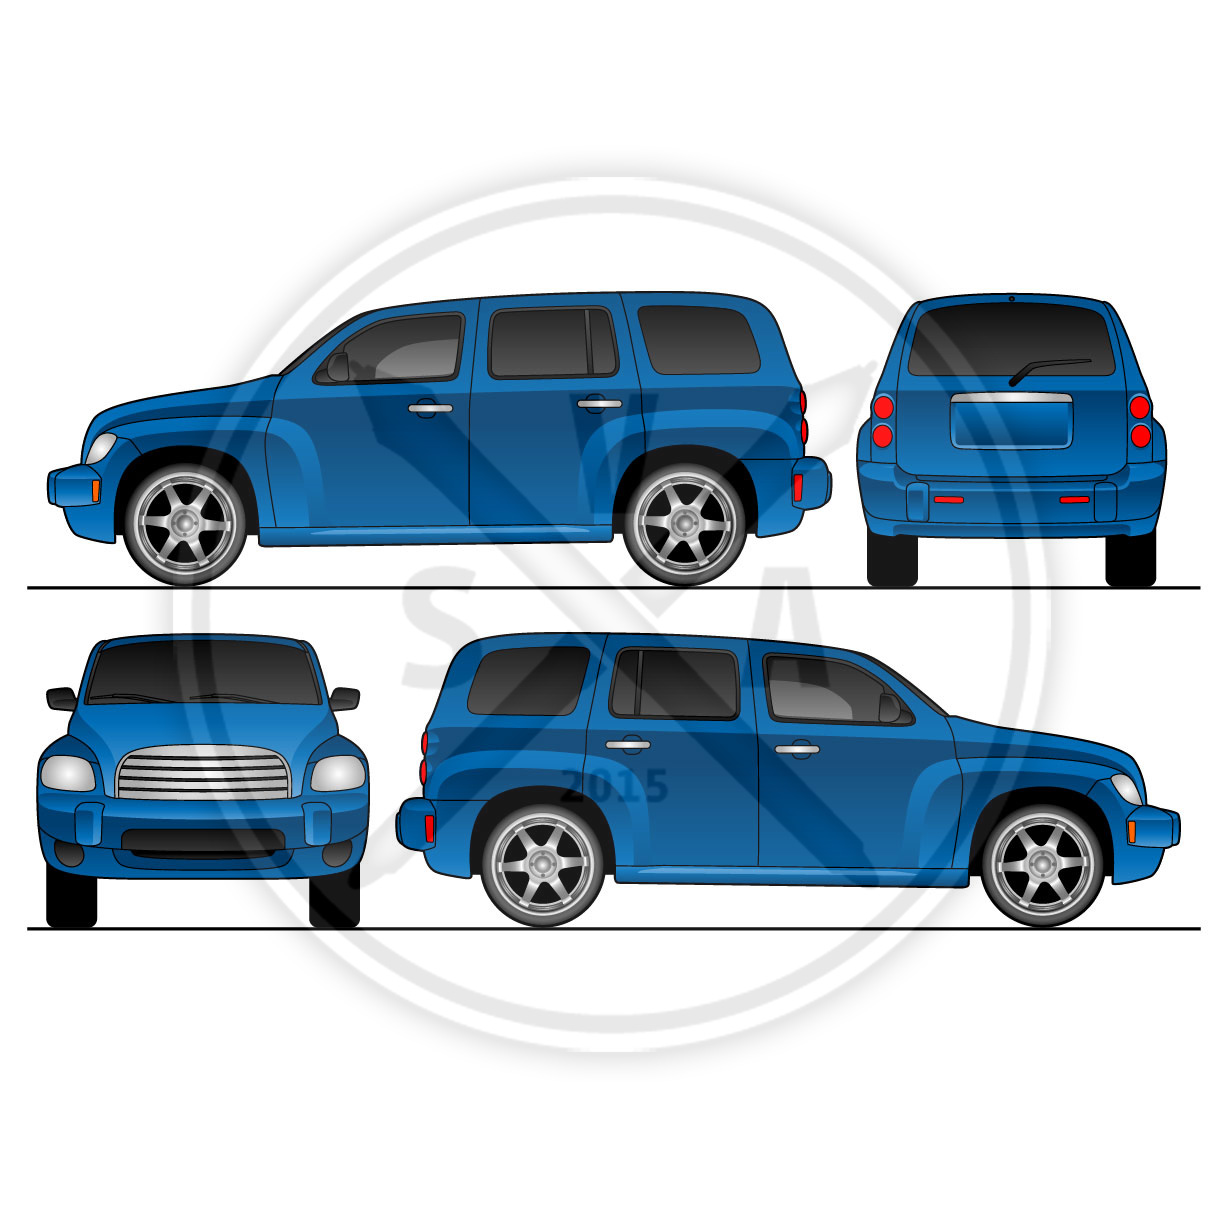 Hhr van wrap design template stock vector art for Truck wrap templates